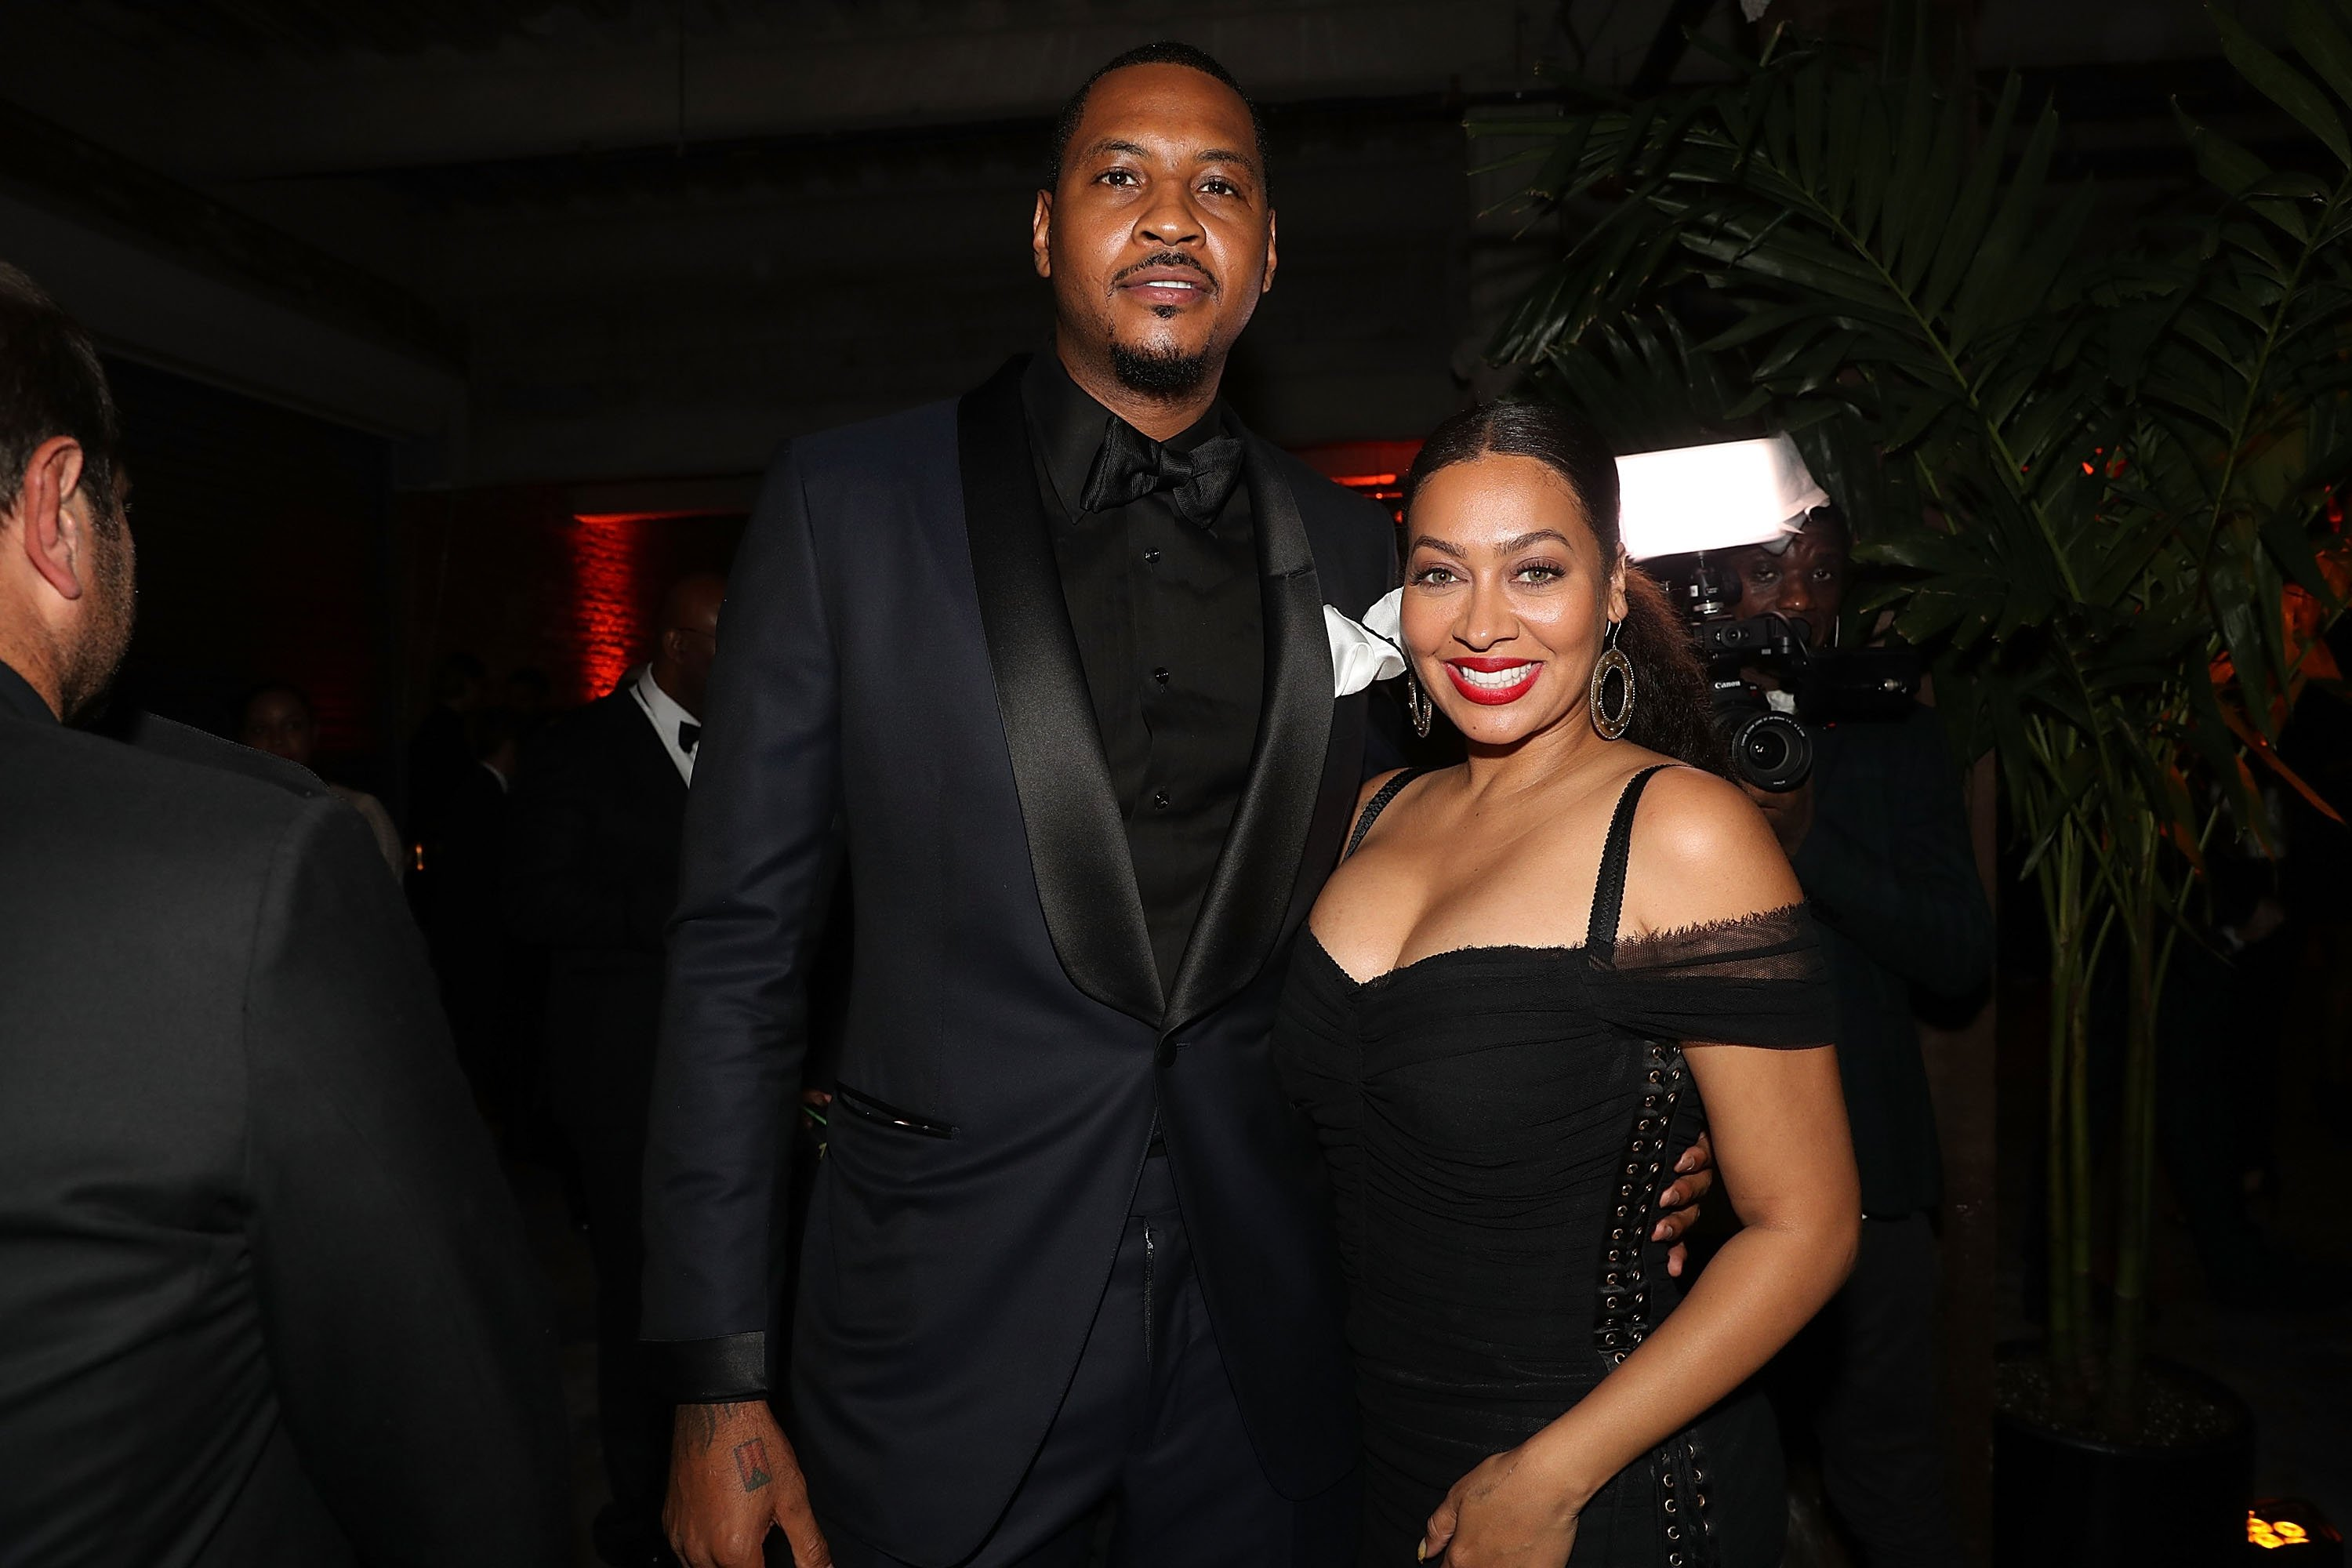 Carmelo Anthony and Lala Anthony/ Source: Getty Images